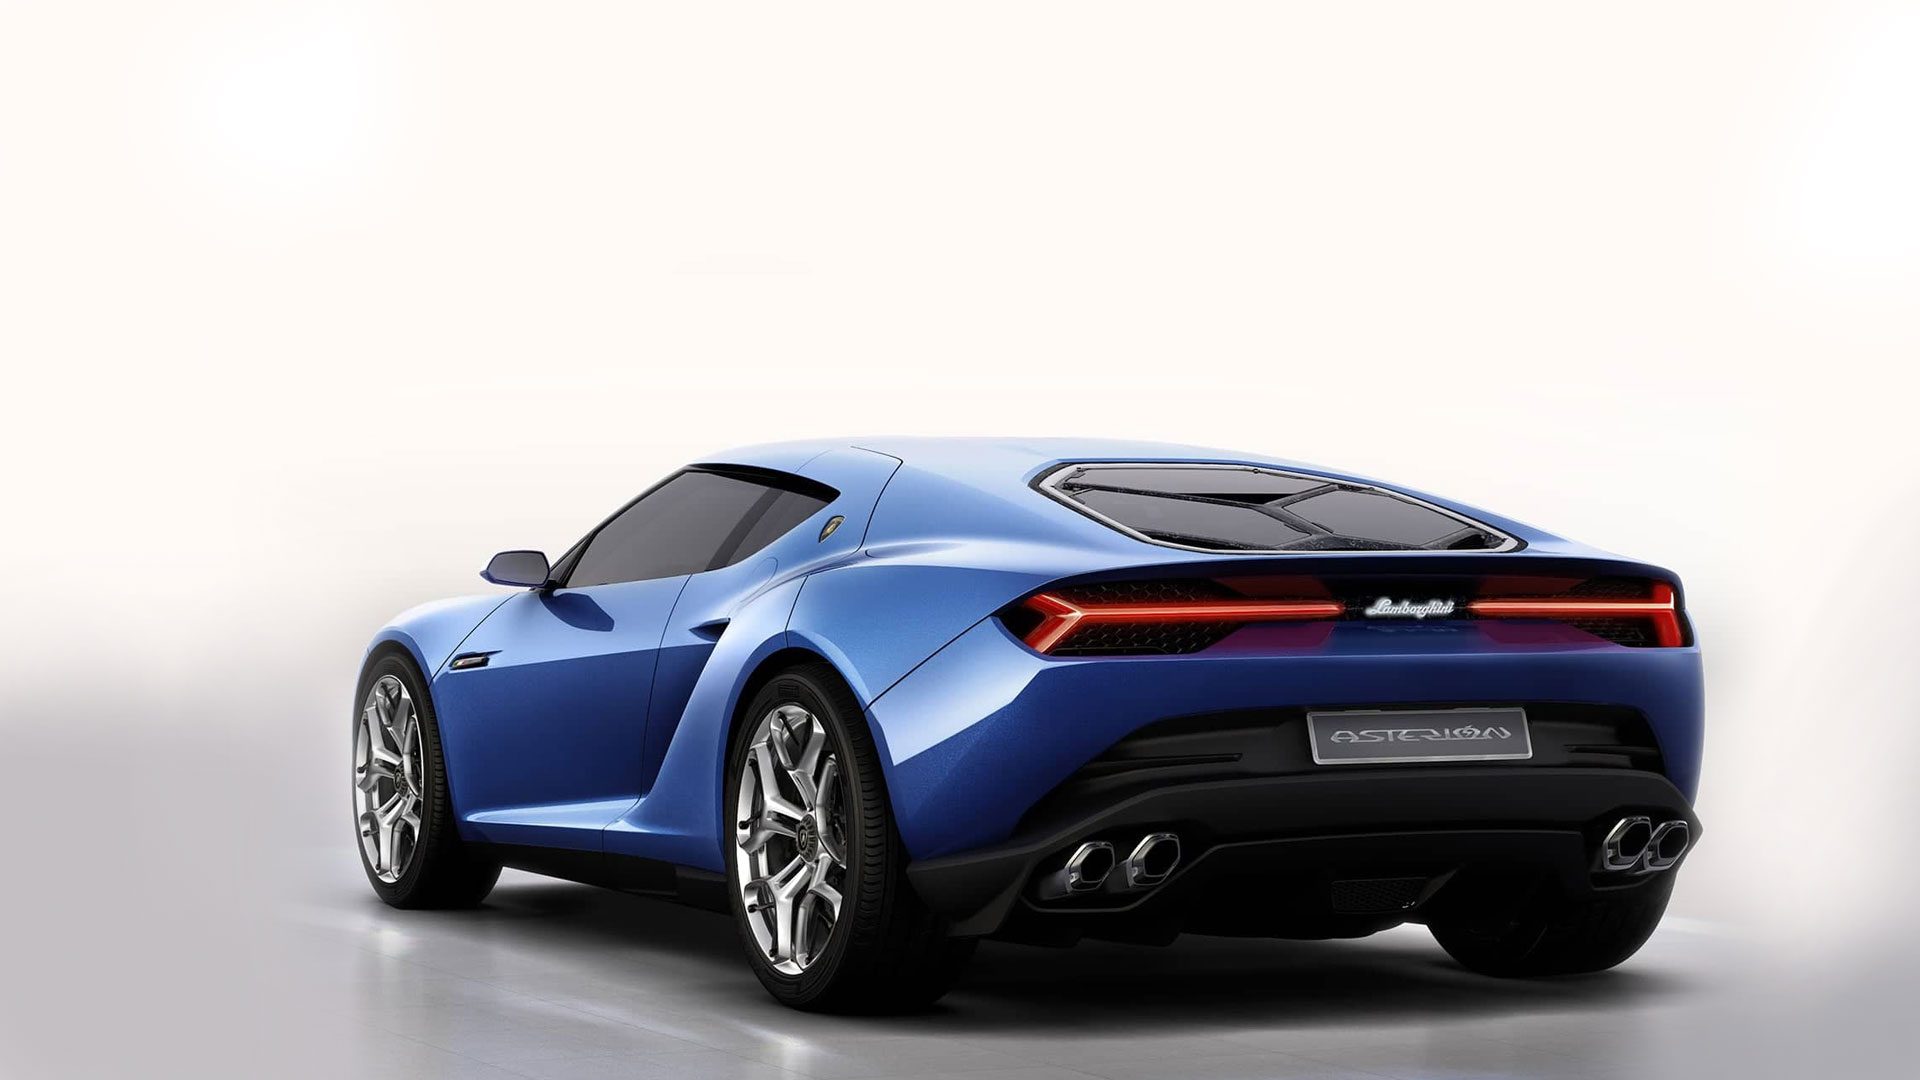 Lamborghini Electric Supercar Technology Not Ready